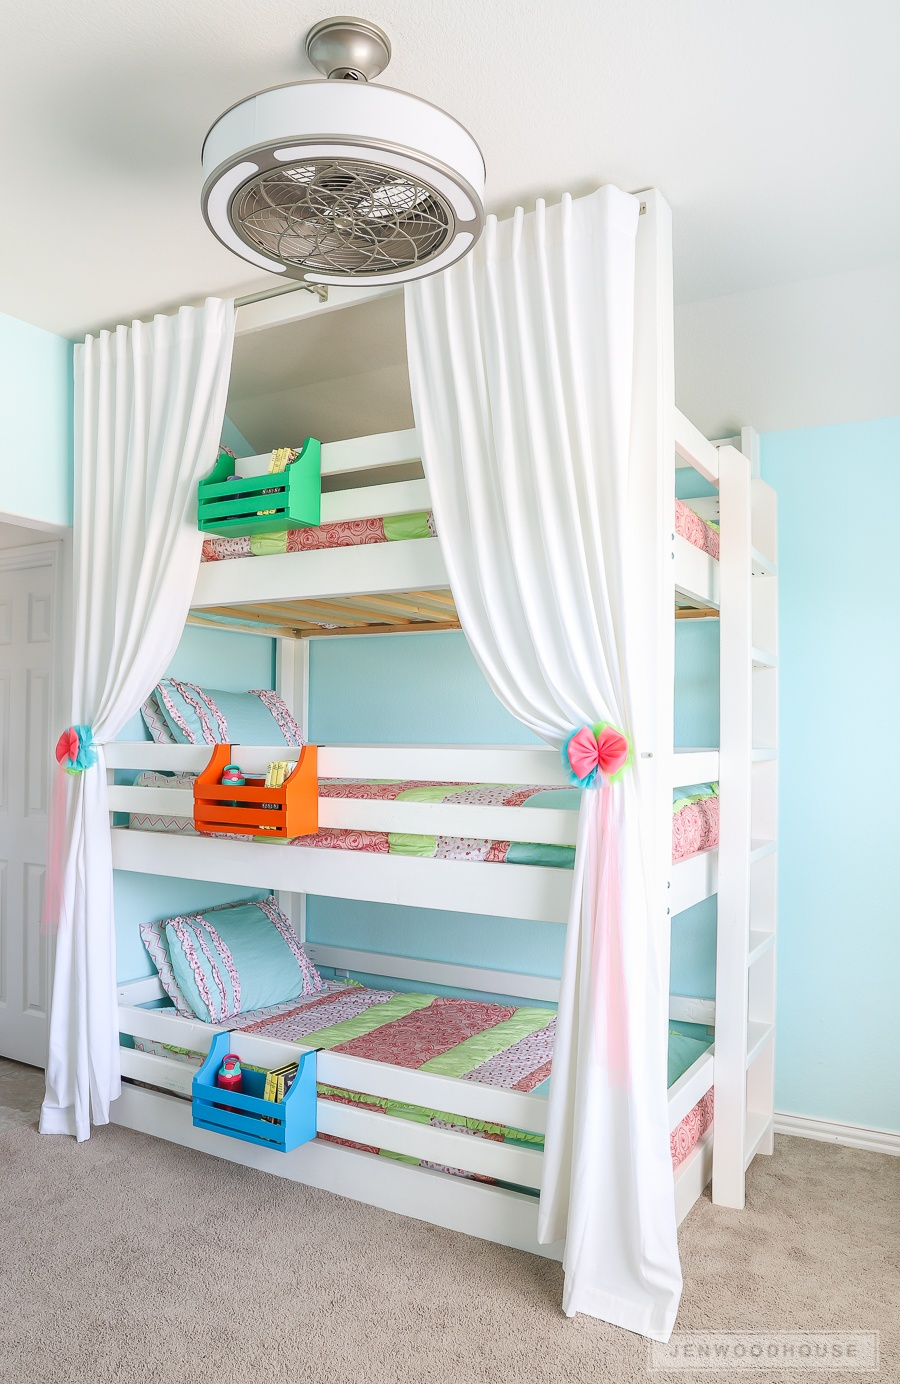 Fabulous DIY Kid Beds - The Scrap Shoppe